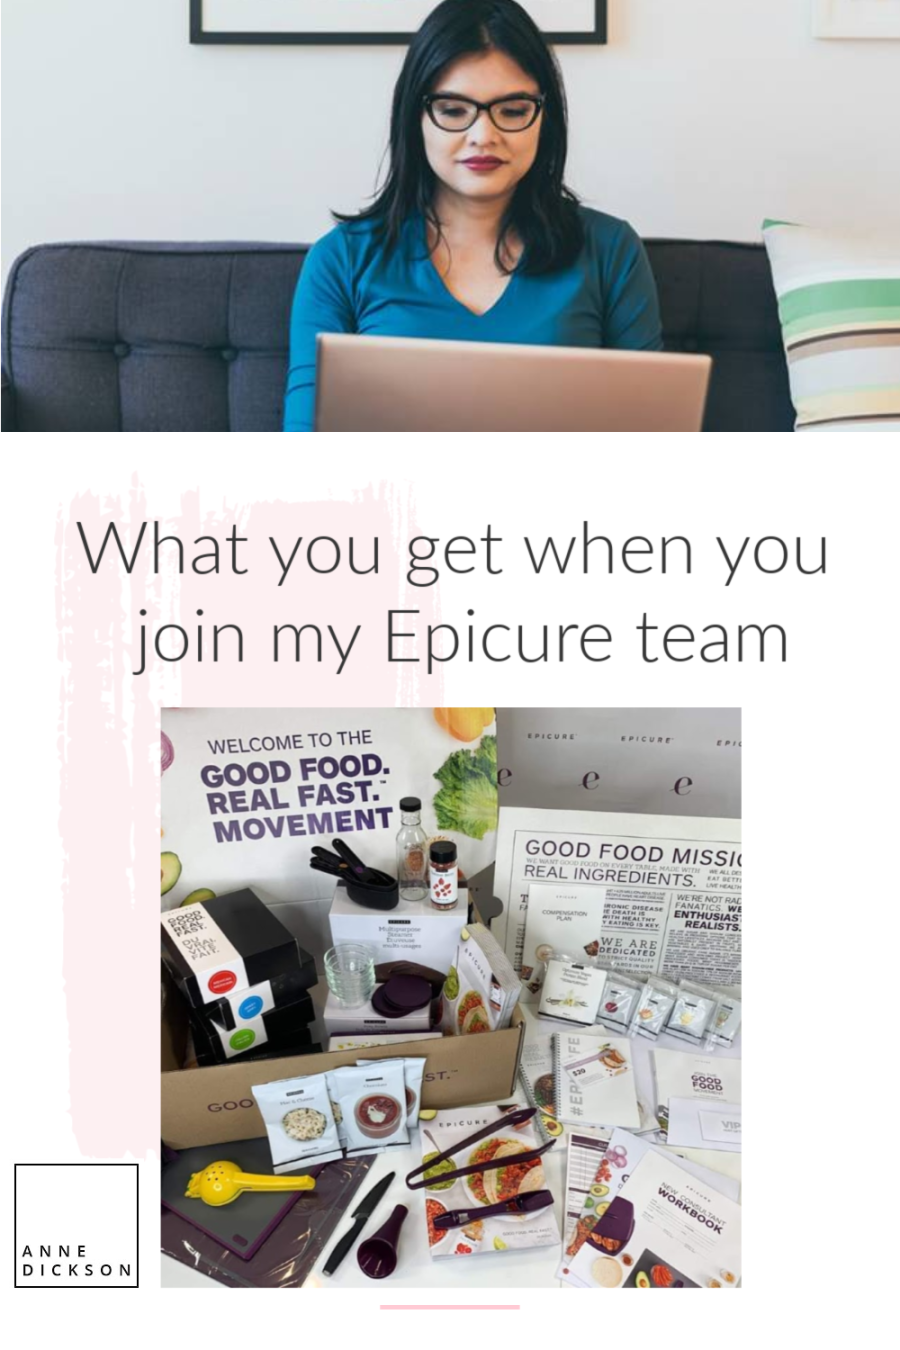 What you get when you join my Epicure team